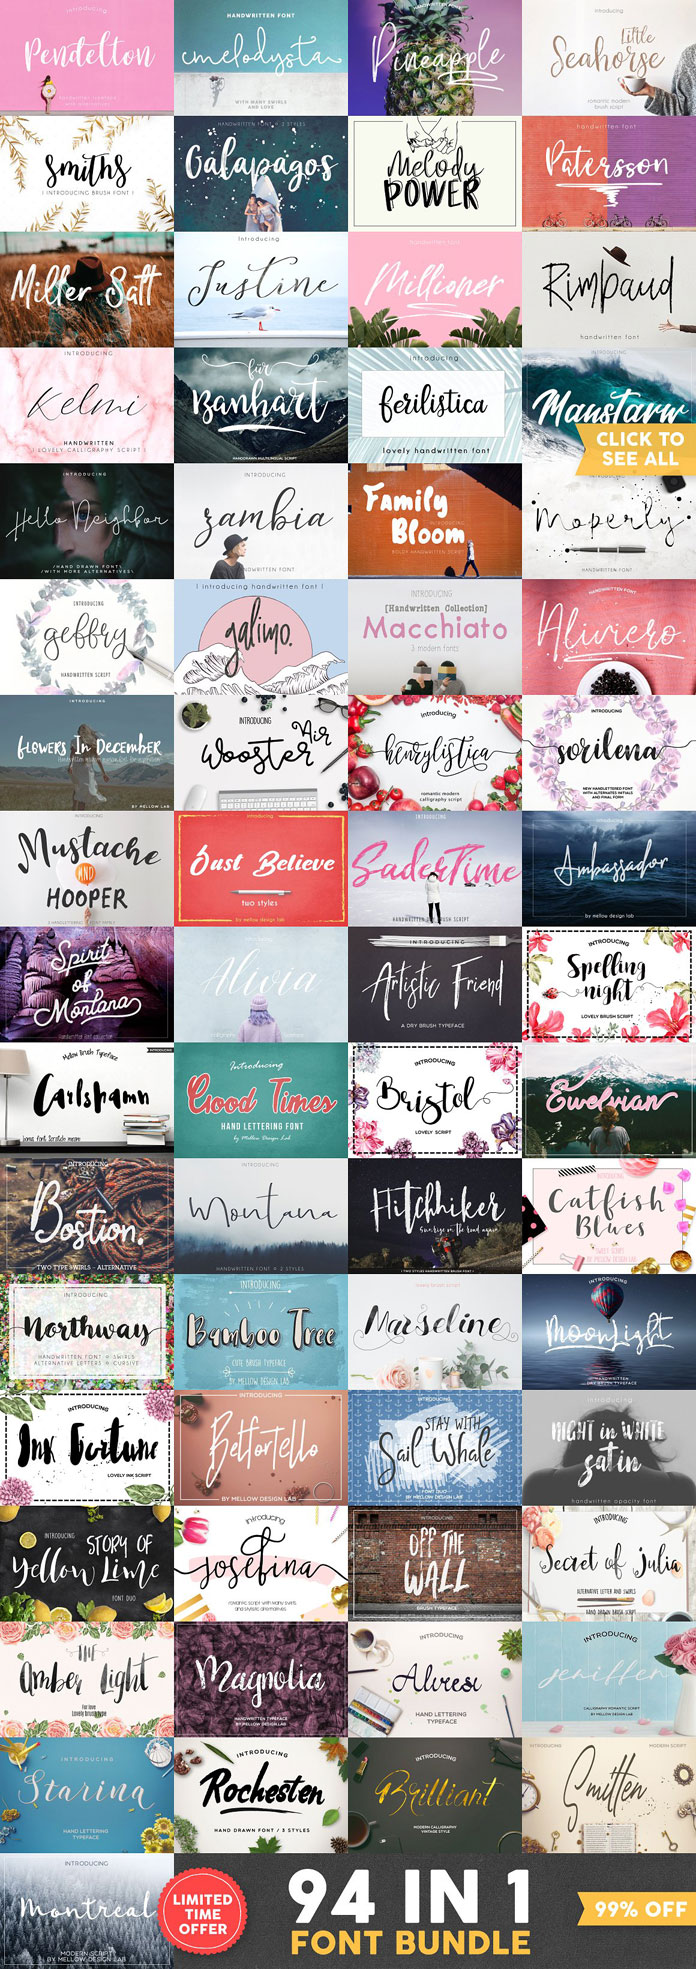 94 fonts by Kelly Reed of Mellow Design Lab.